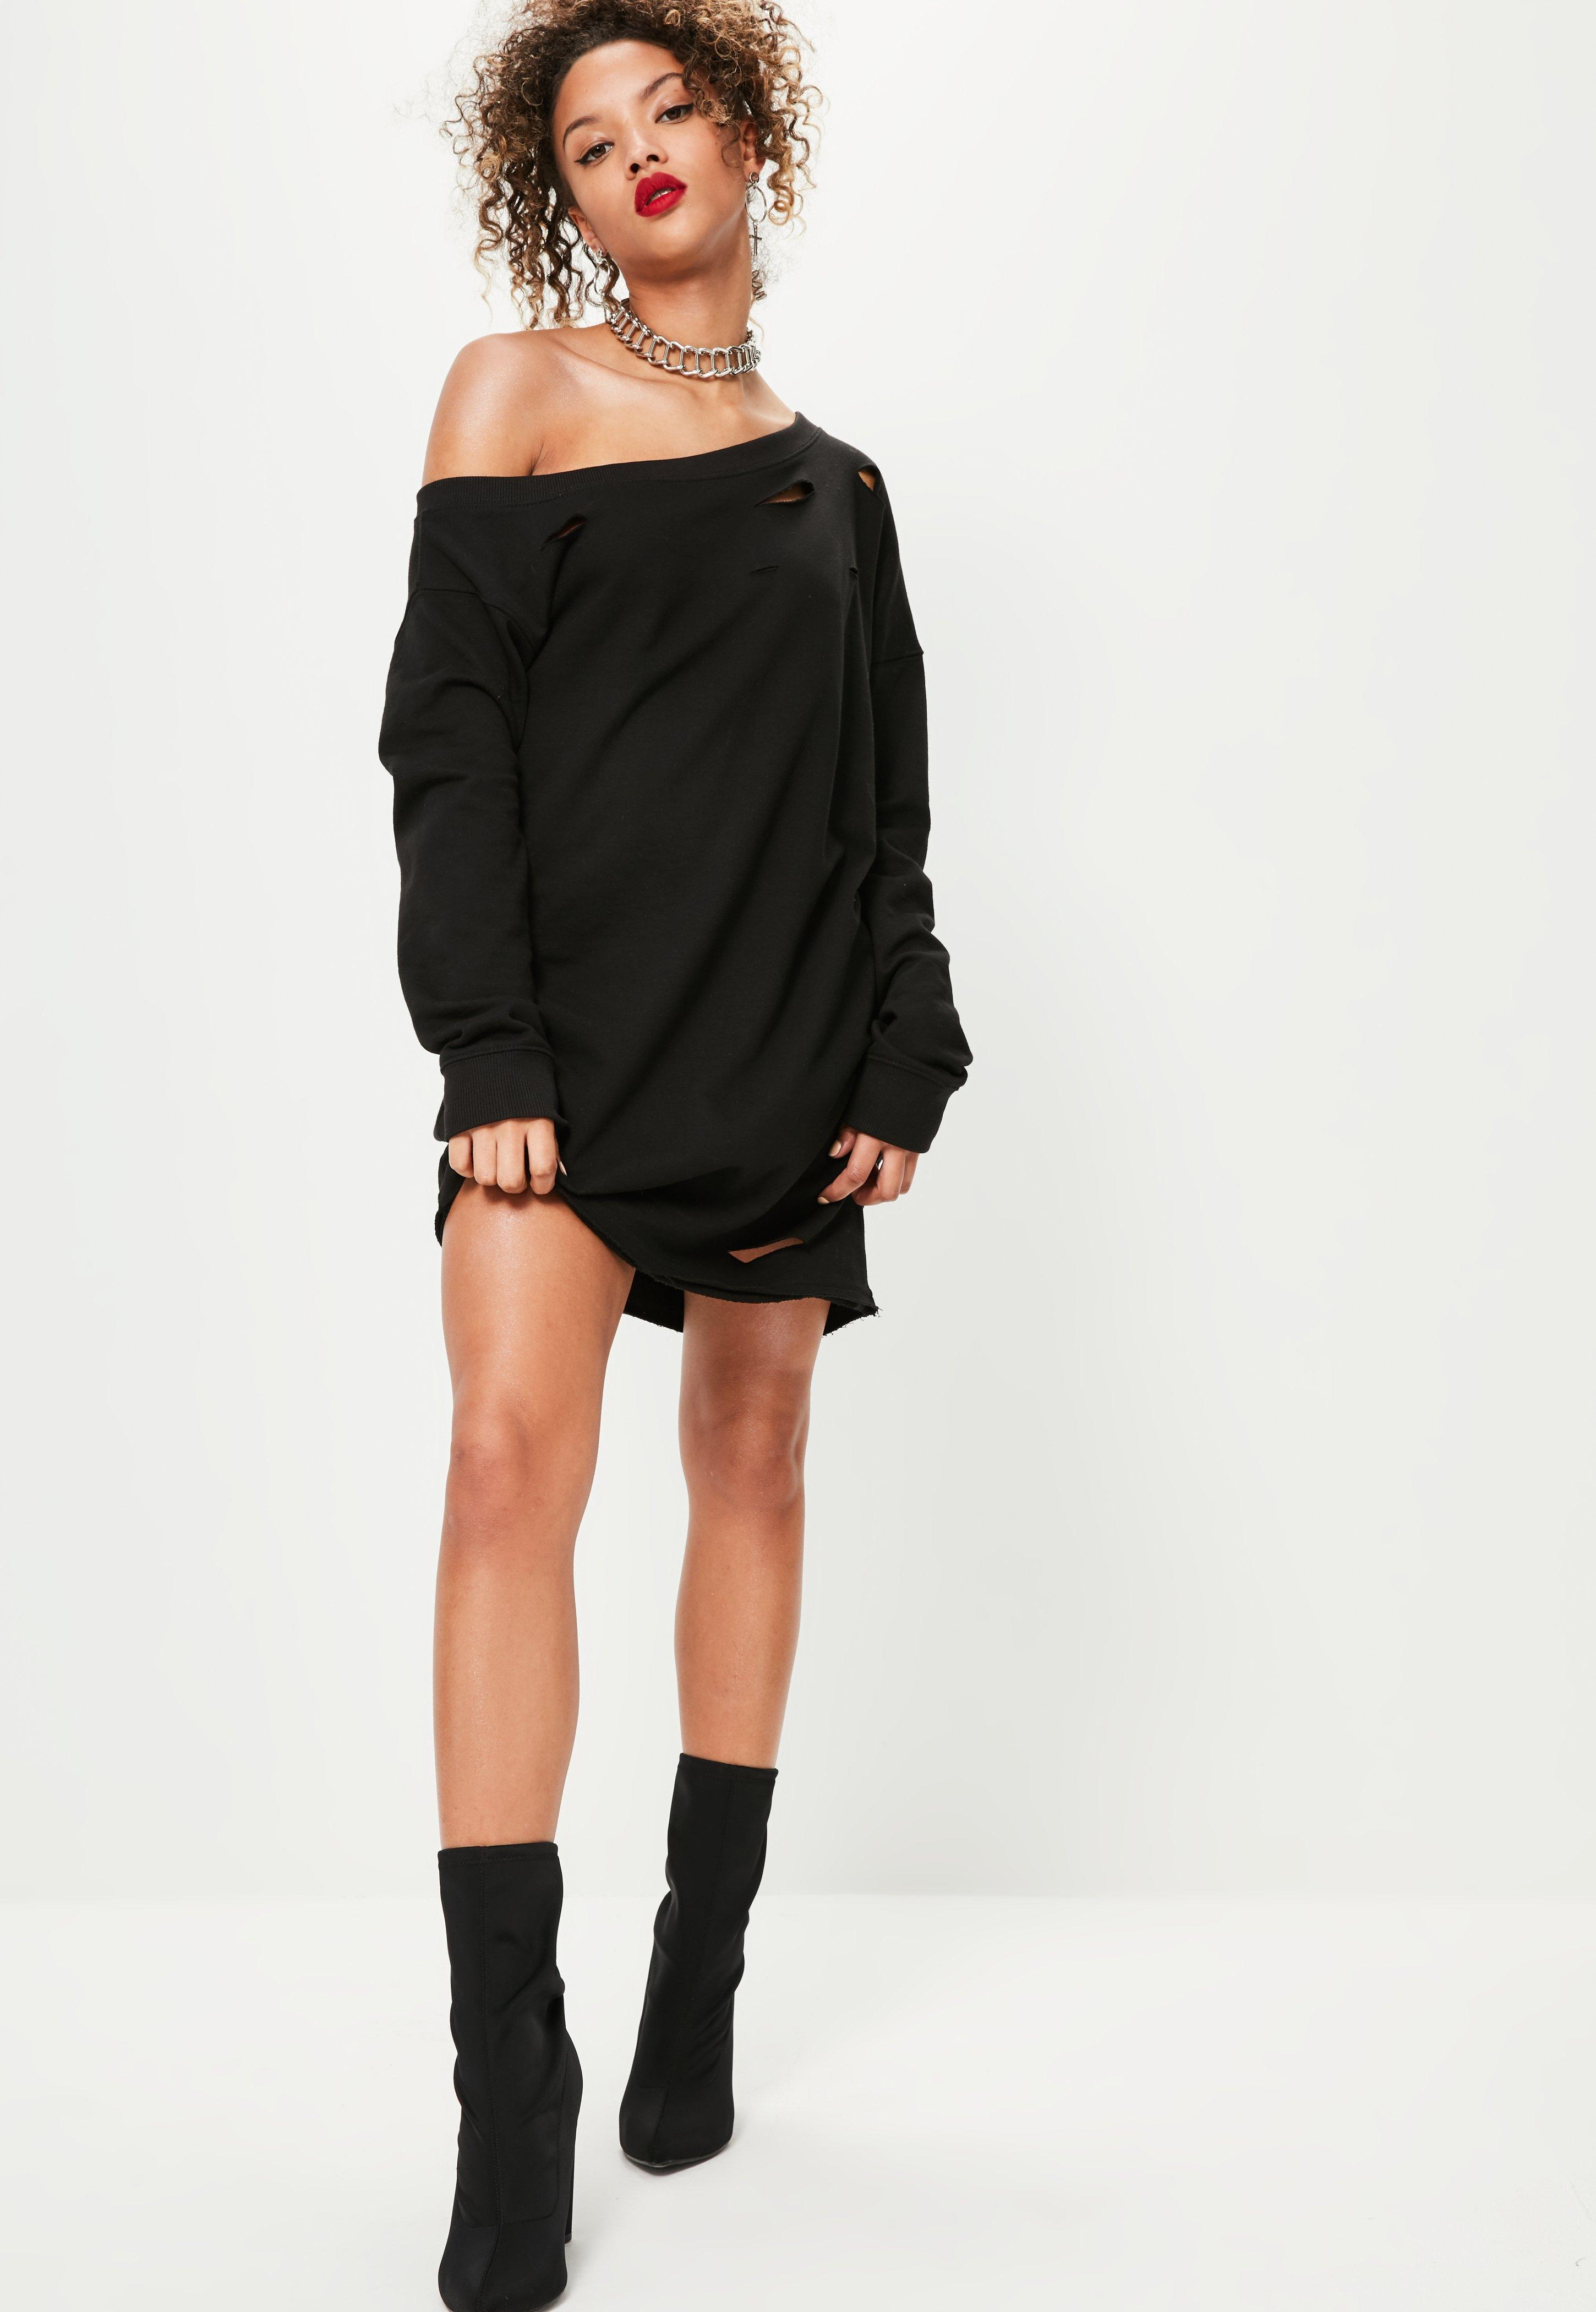 Missguided Ripped Oversized Jumper Dress Black in Black | Lyst